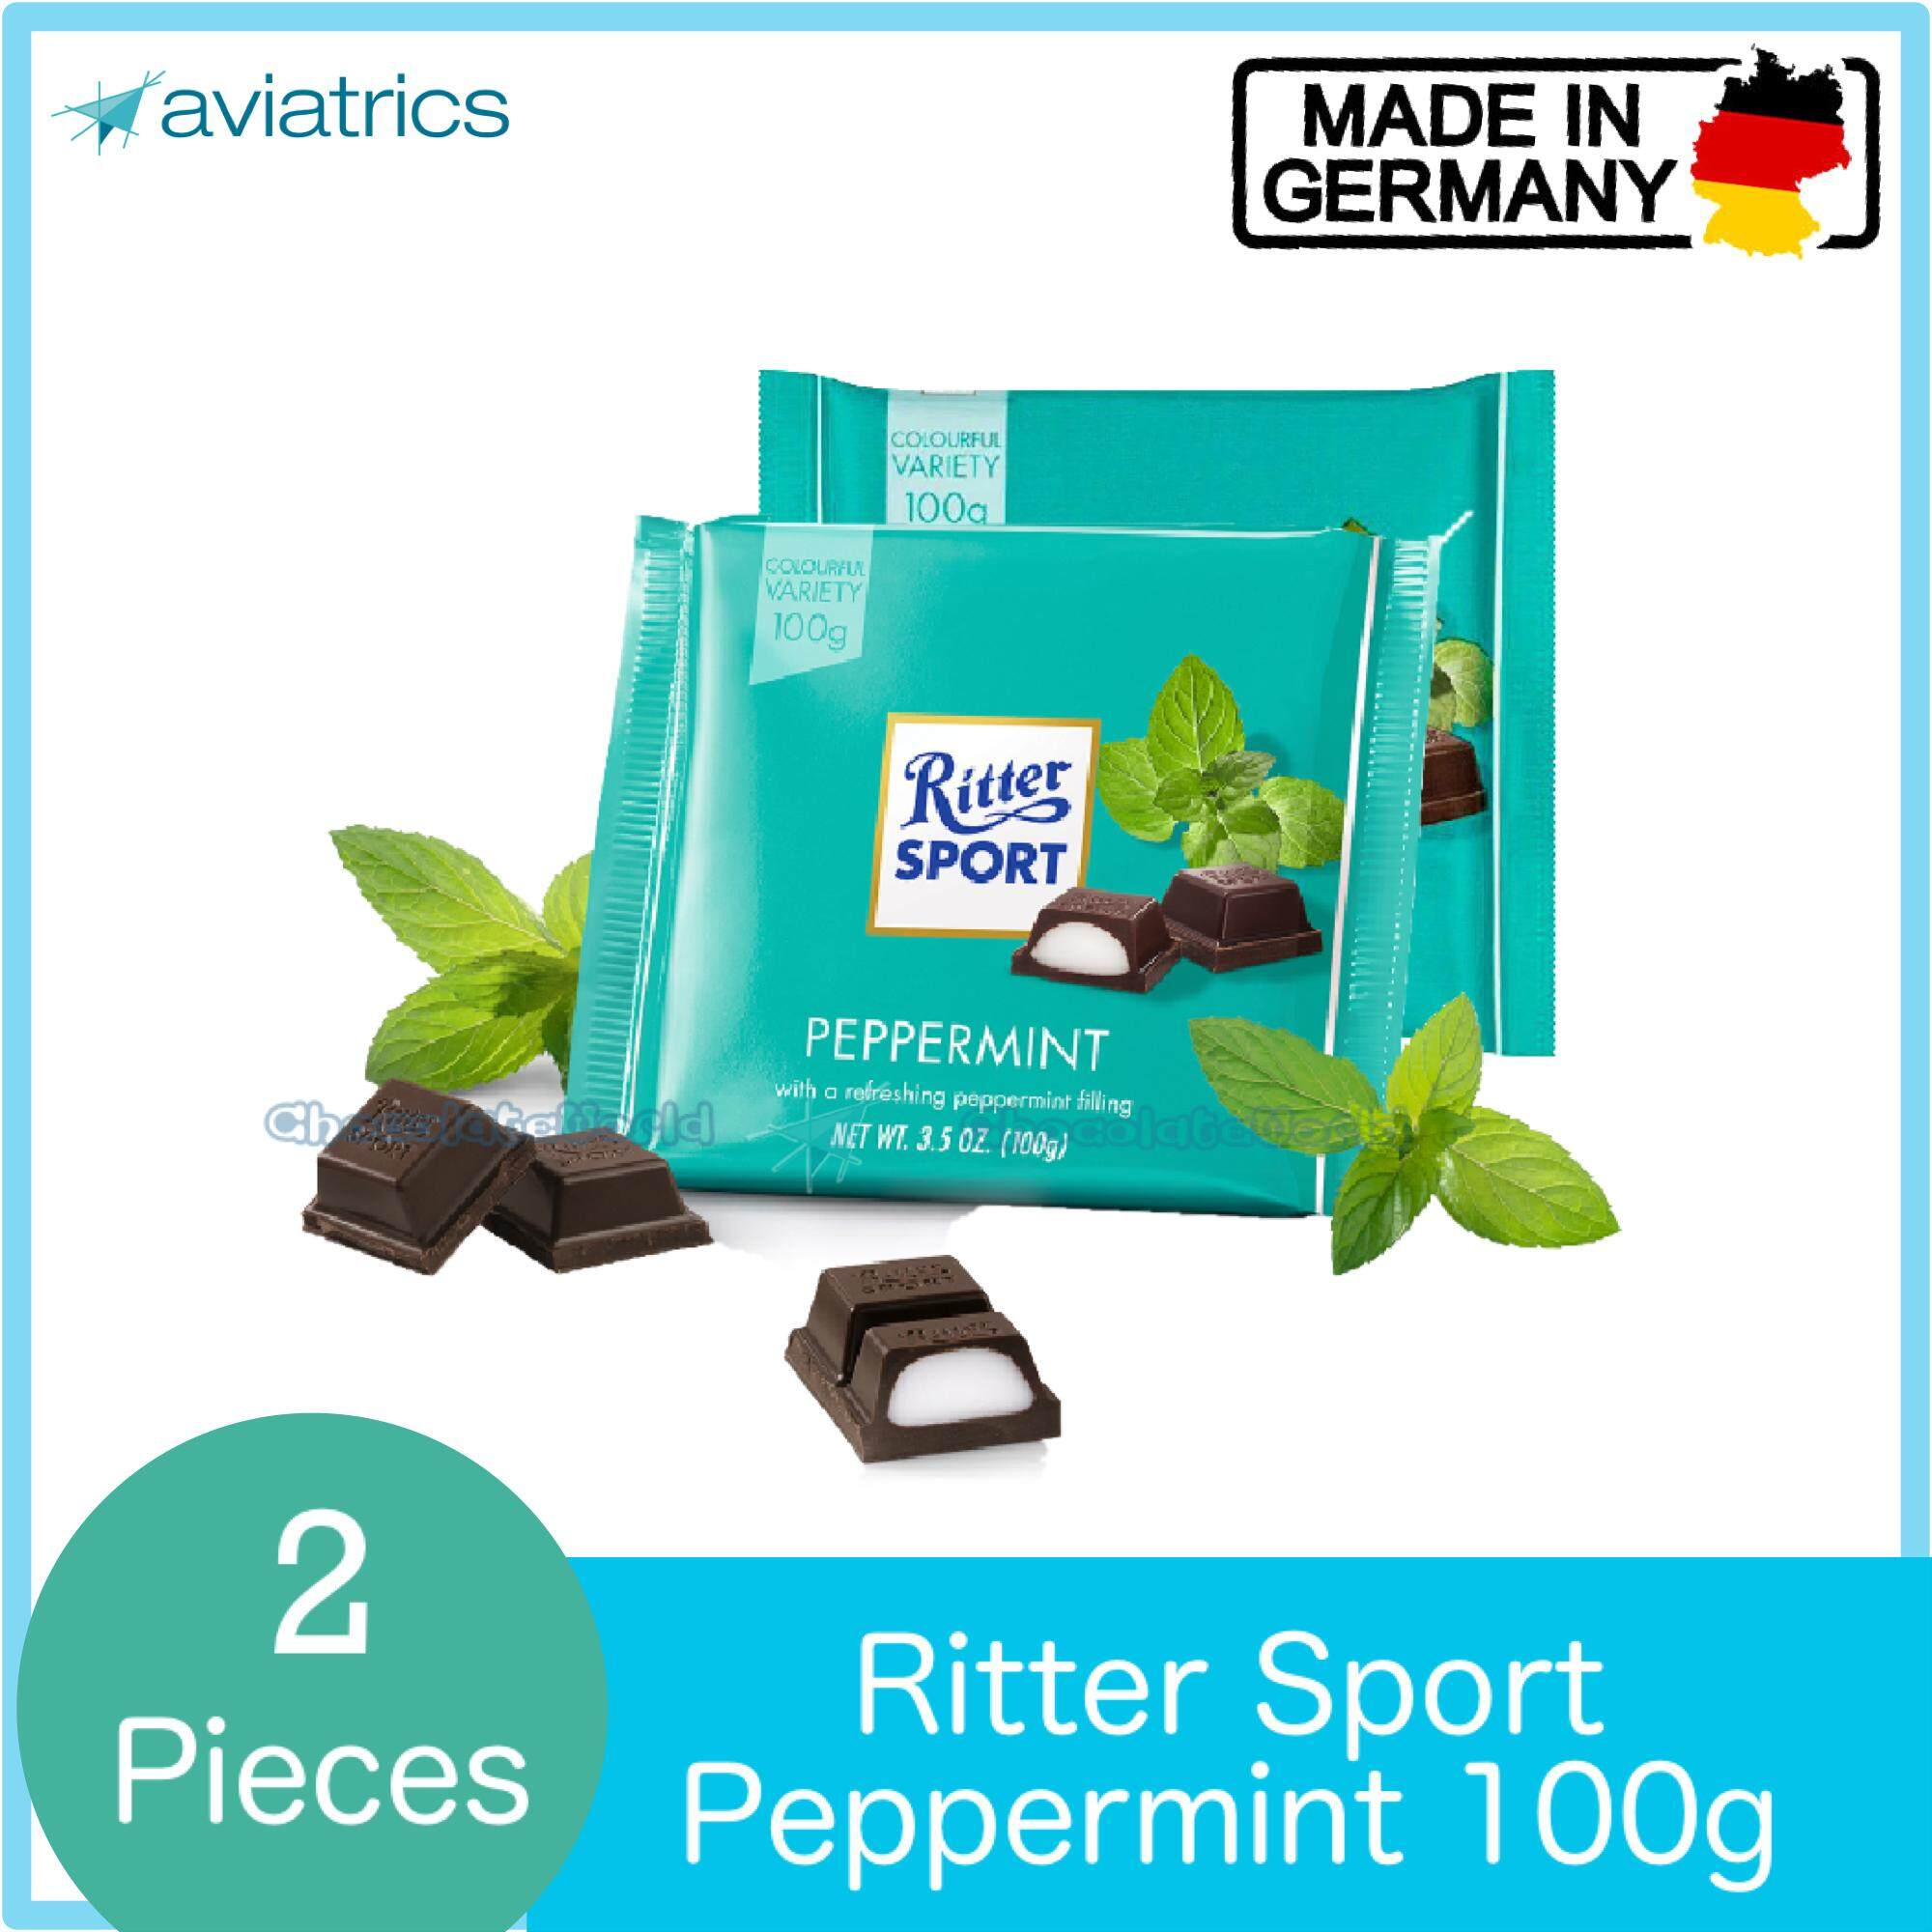 Ritter Sport Peppermint 100g X 2 (Made in Germany)